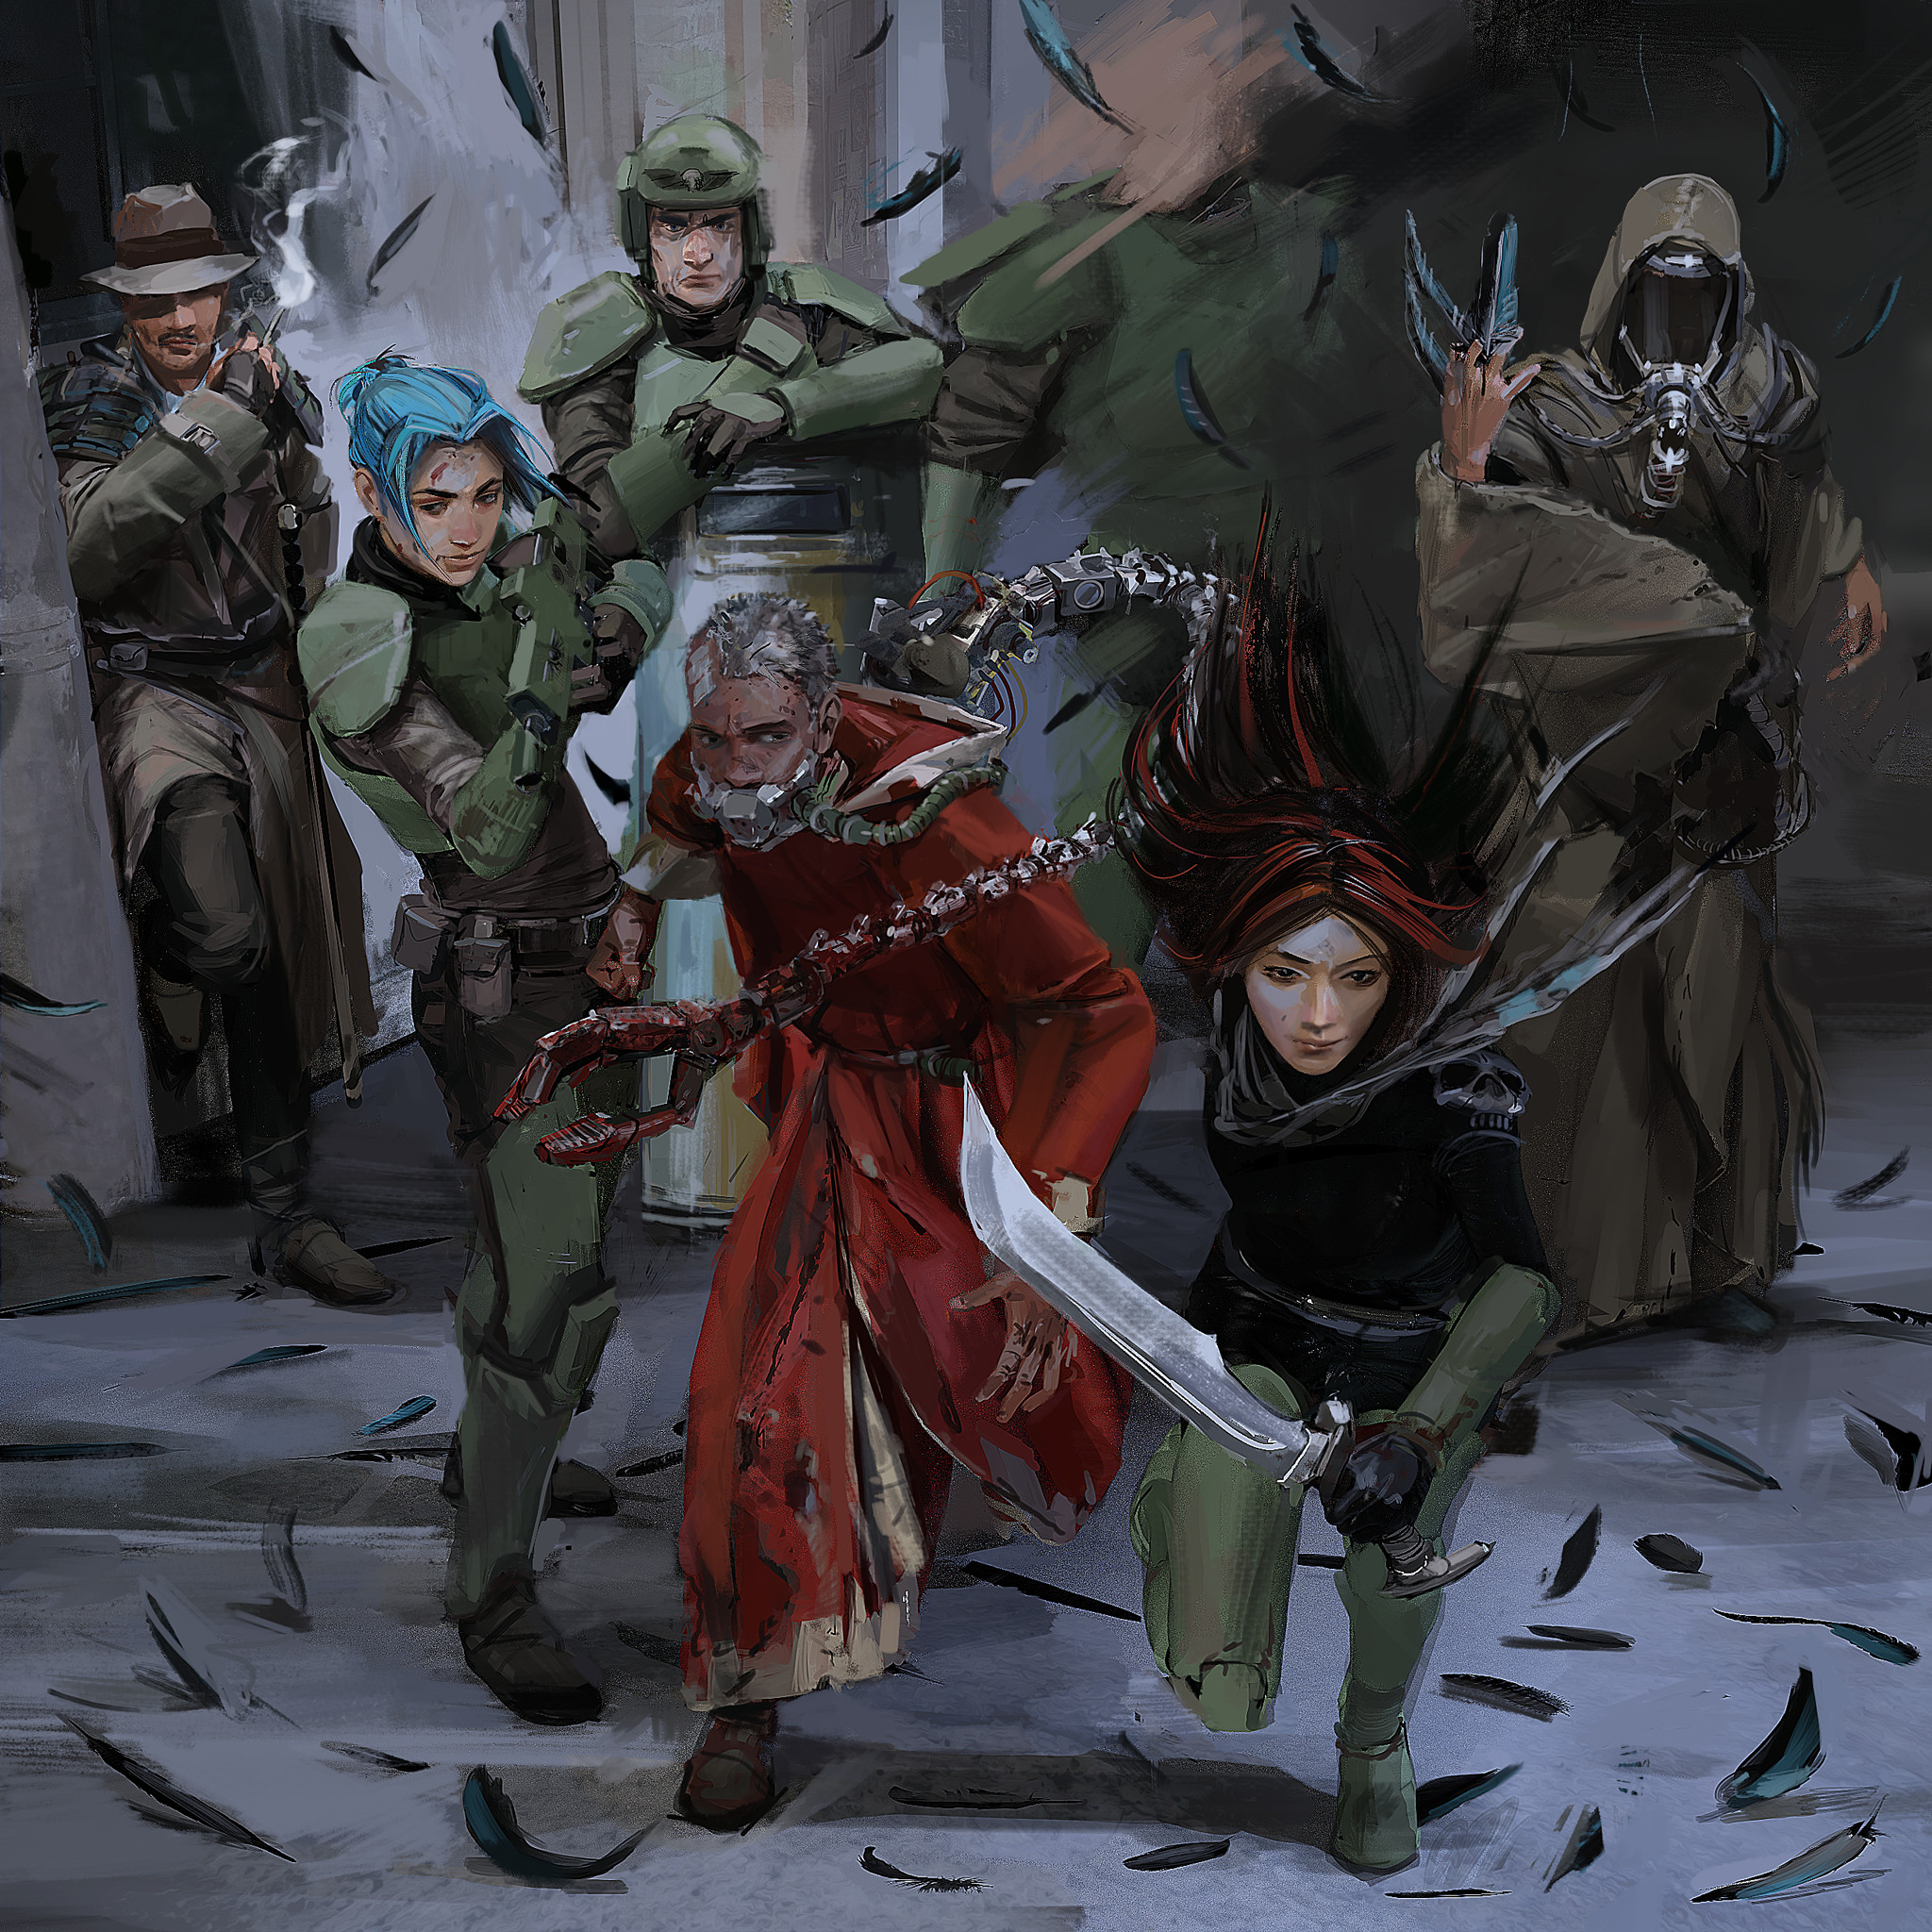 flashback to the very start of the campaign when everyone was a lot less powerful and/or heretical